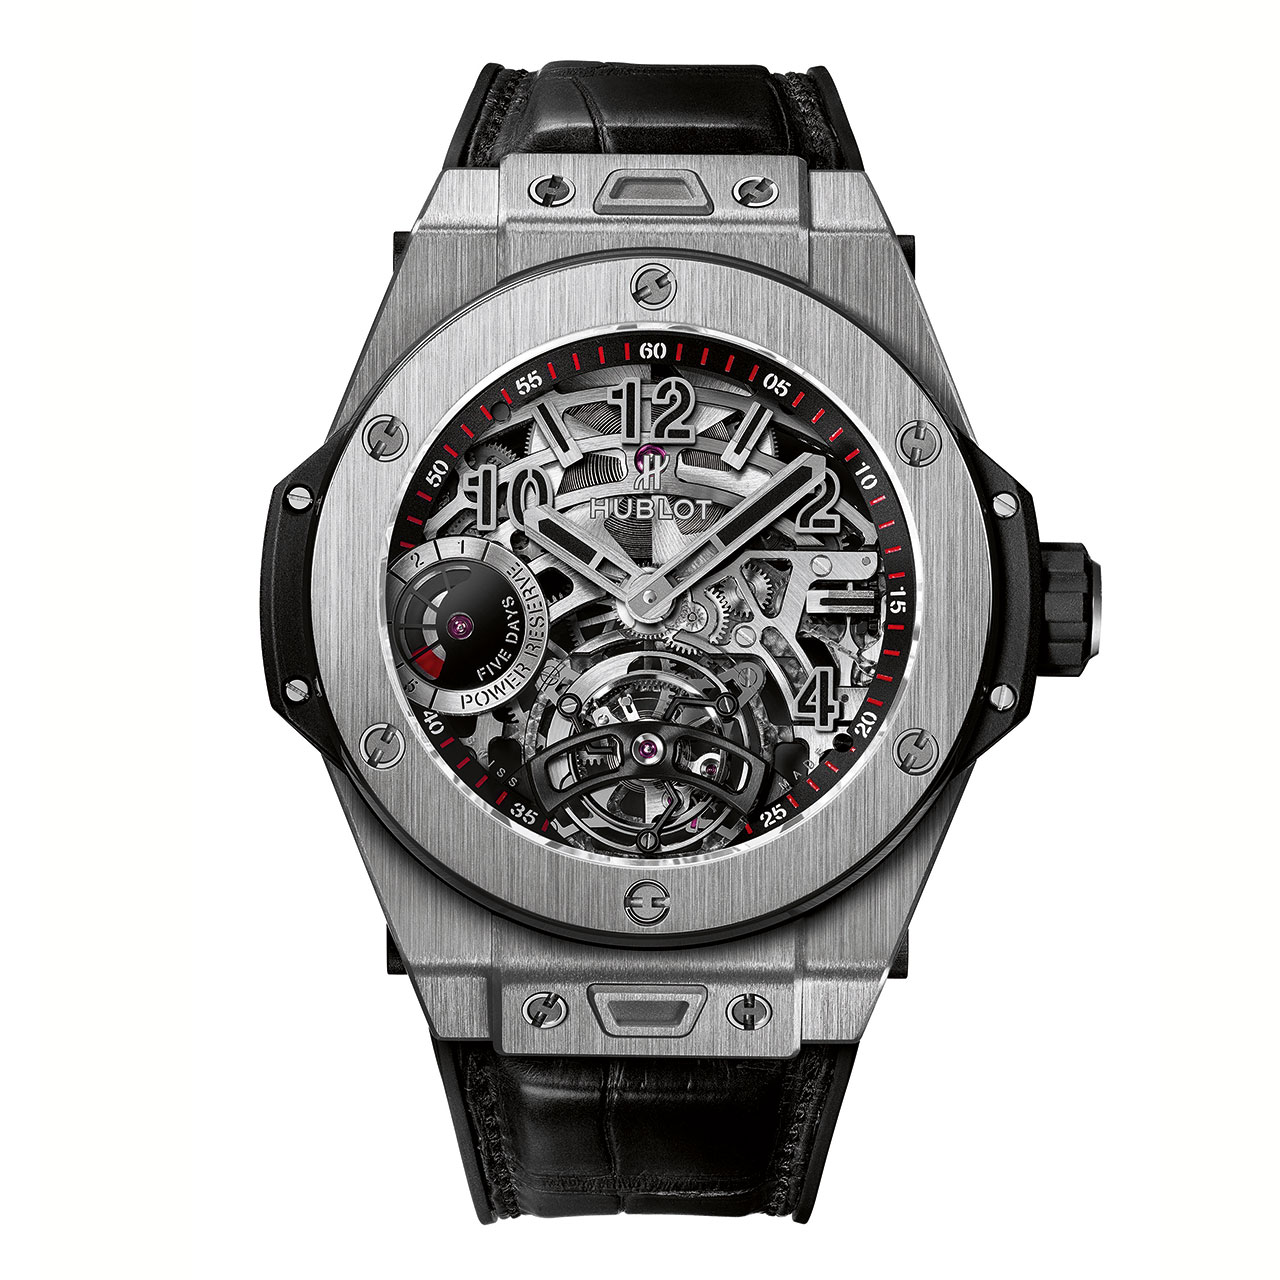 Hublot Big Bang Tourbillon Power Reserve 5-Days Indicator Mechanical Watch